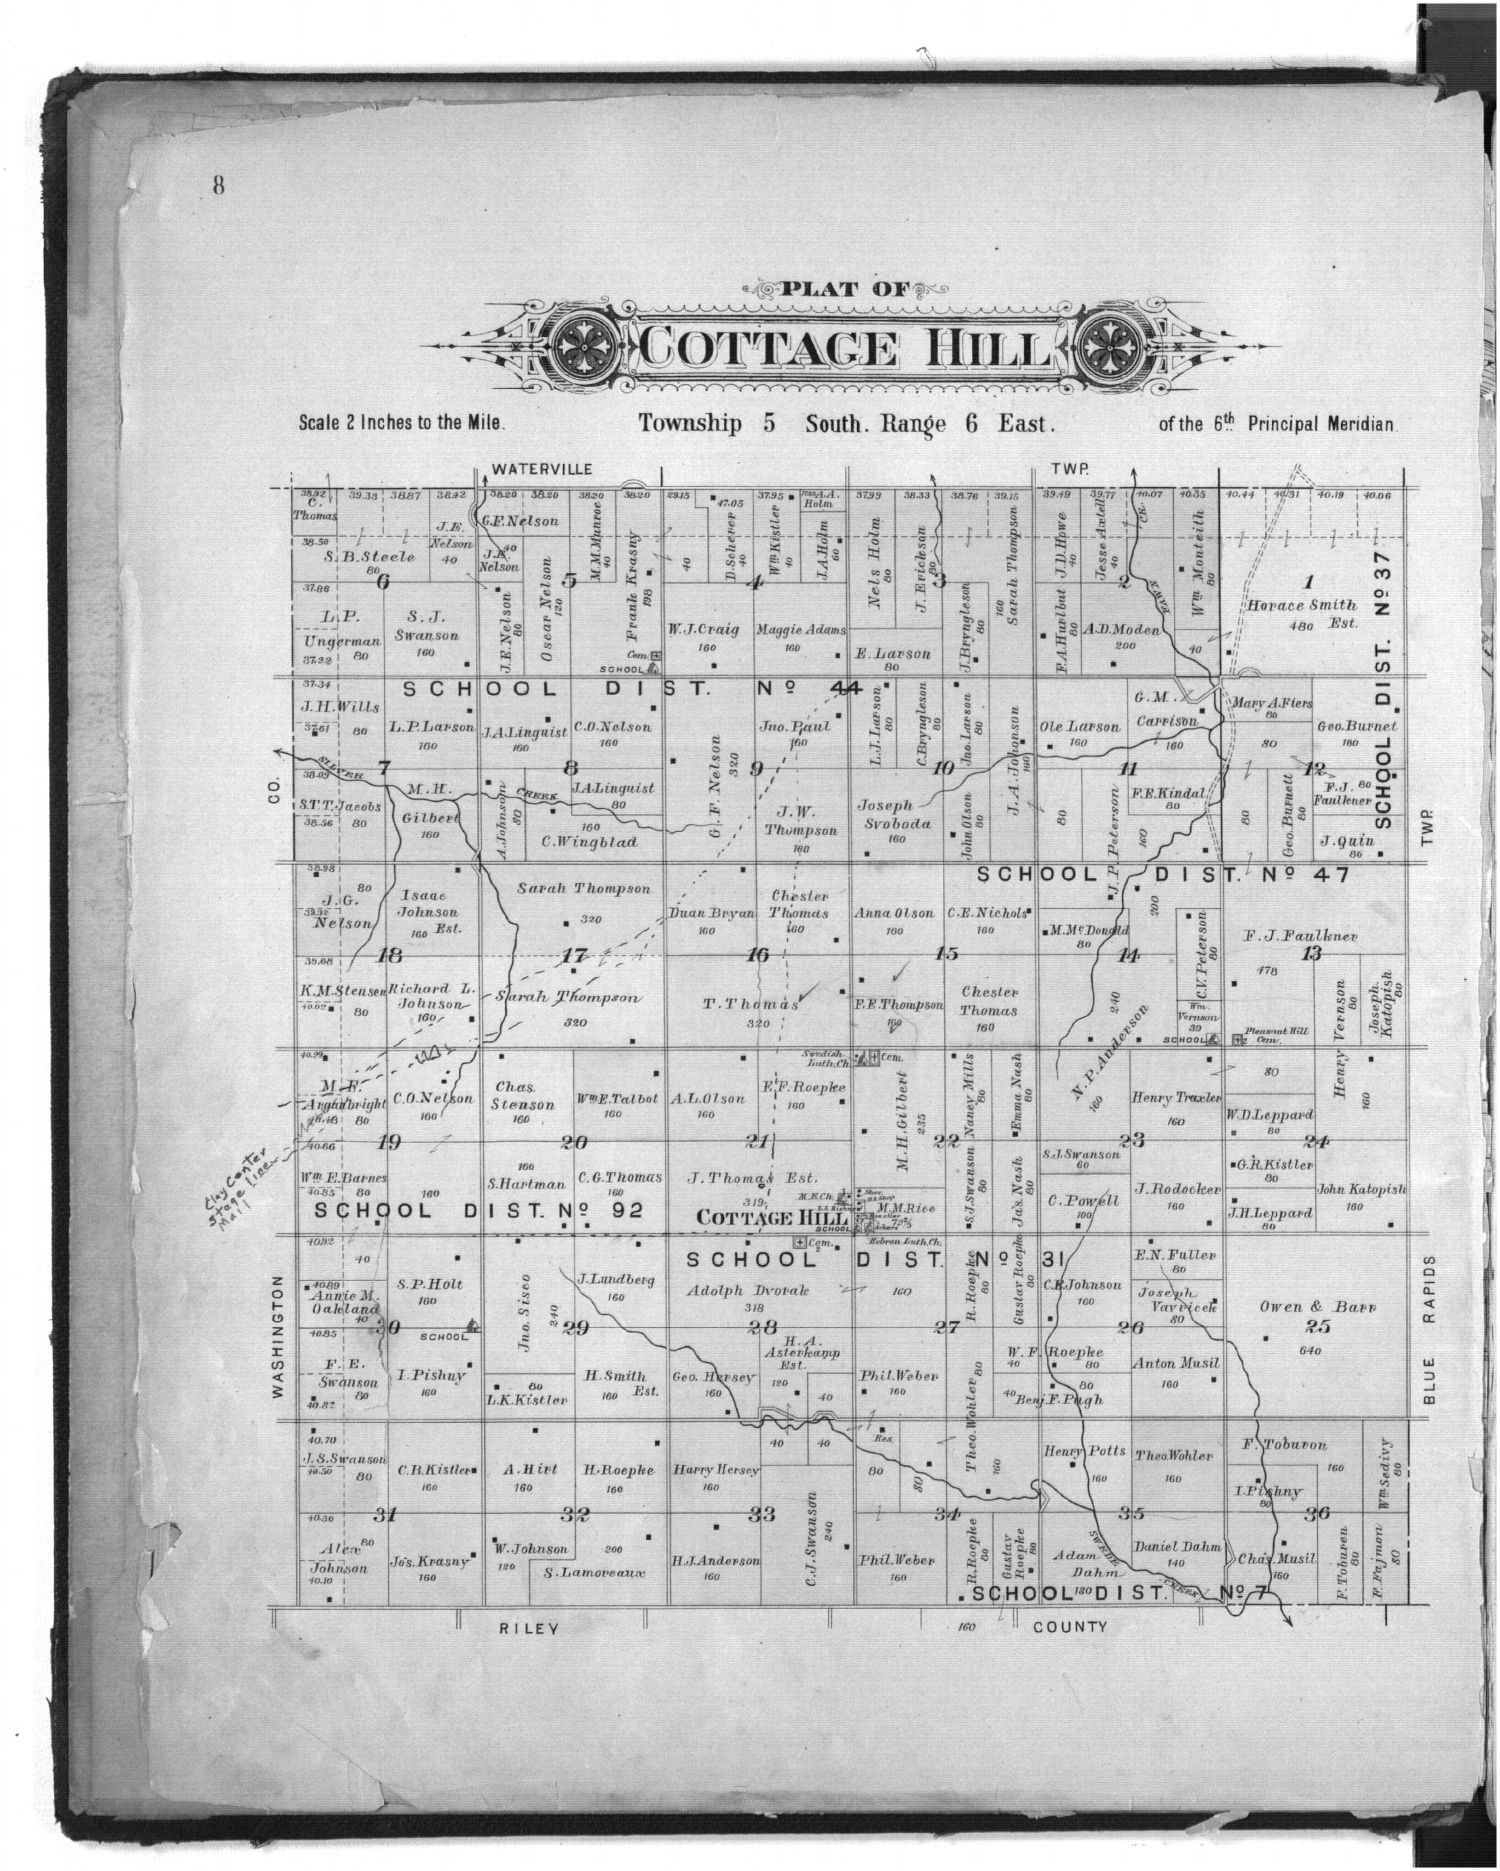 Plat book of Marshall County, Kansas - 8